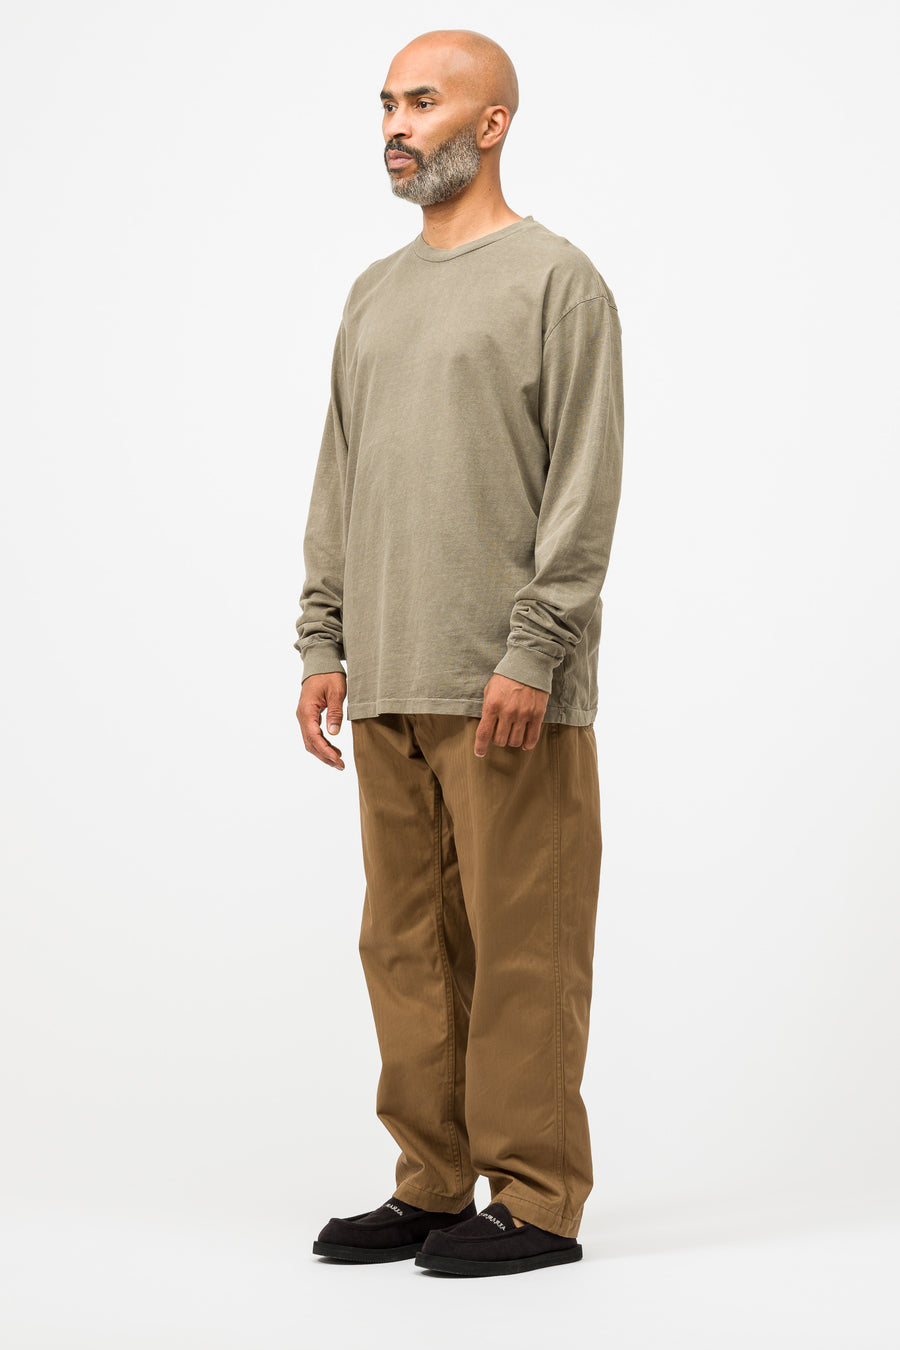 Engineered Garments Ground Pant in Khaki - Notre